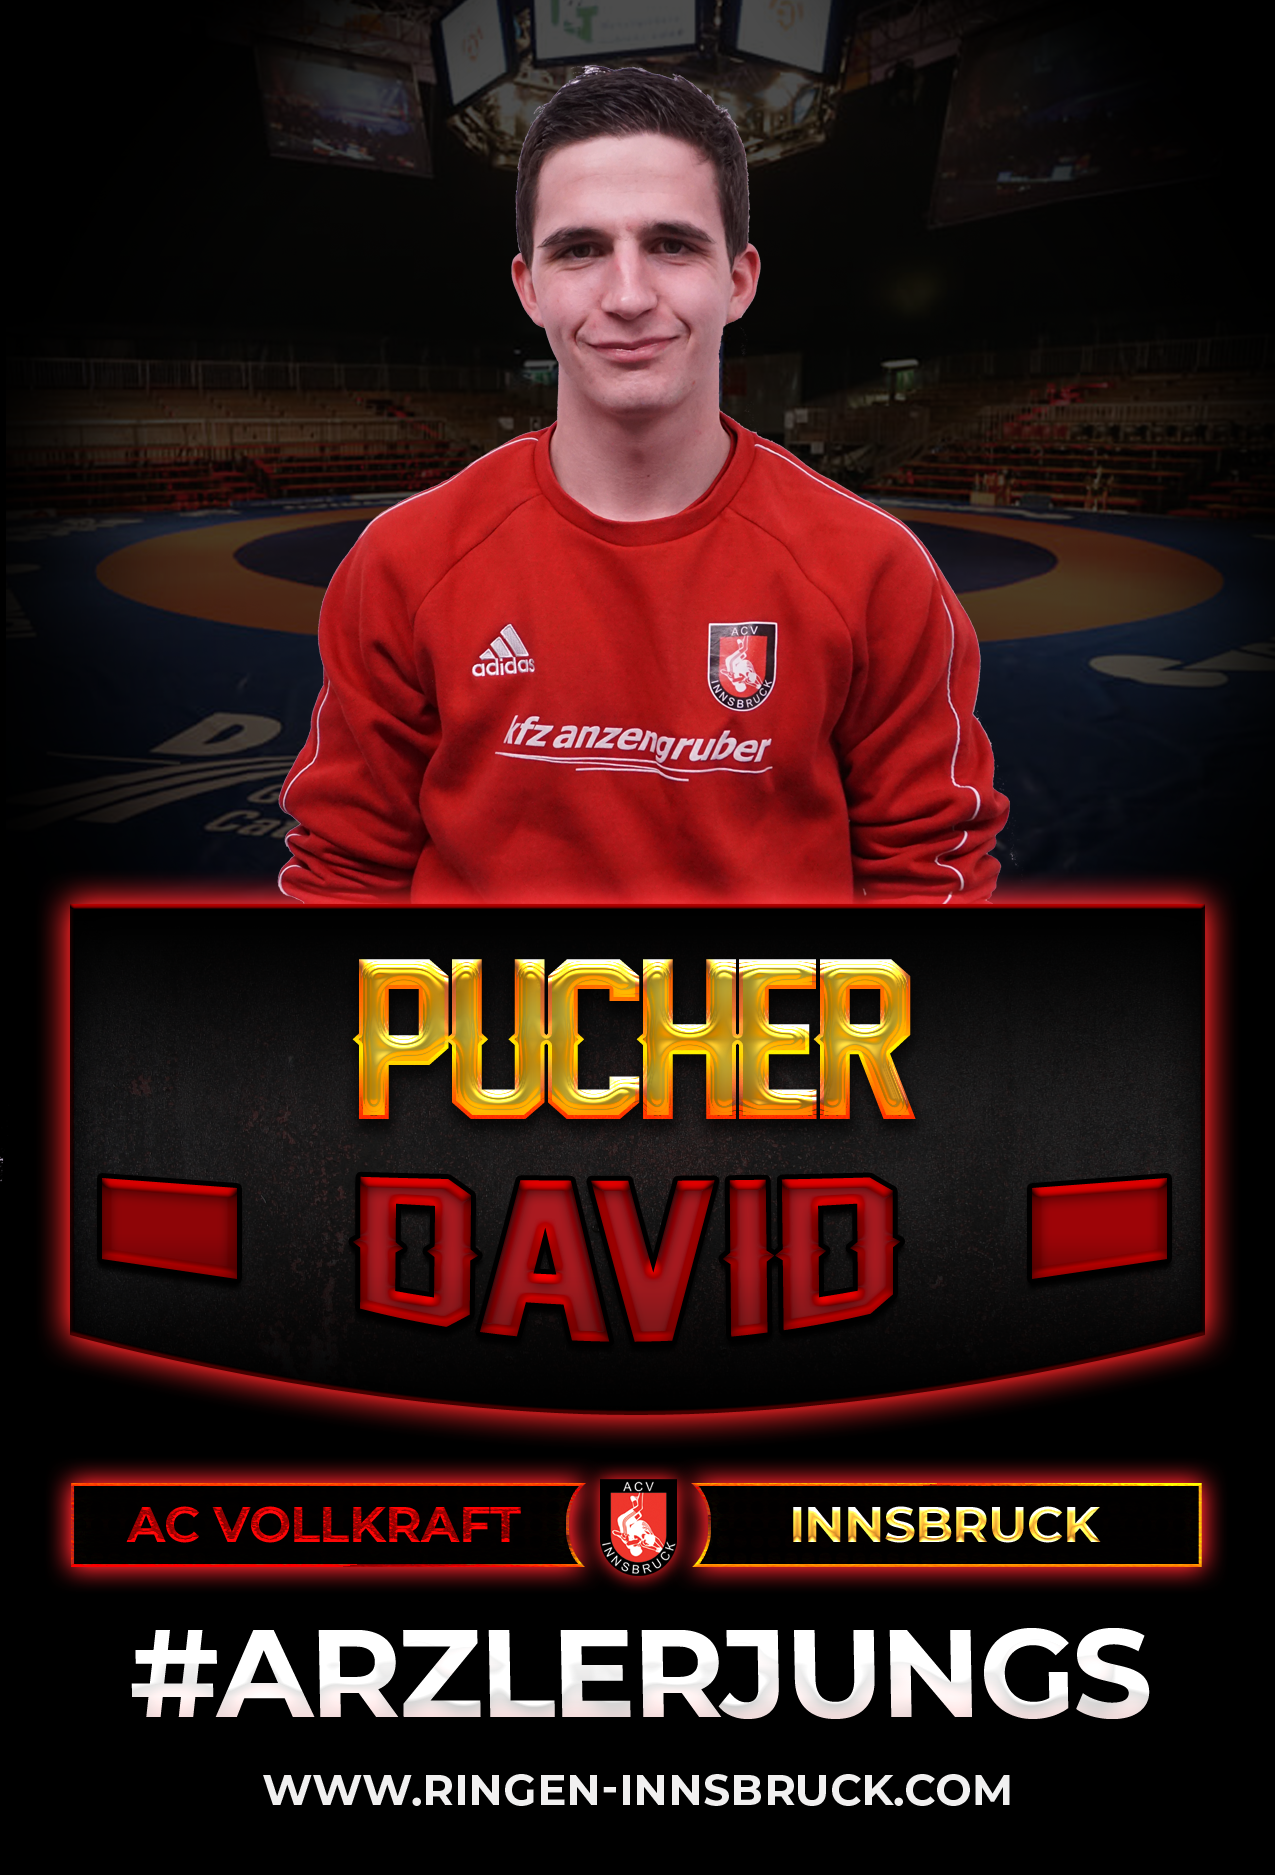 pucher_david_Kopie.png